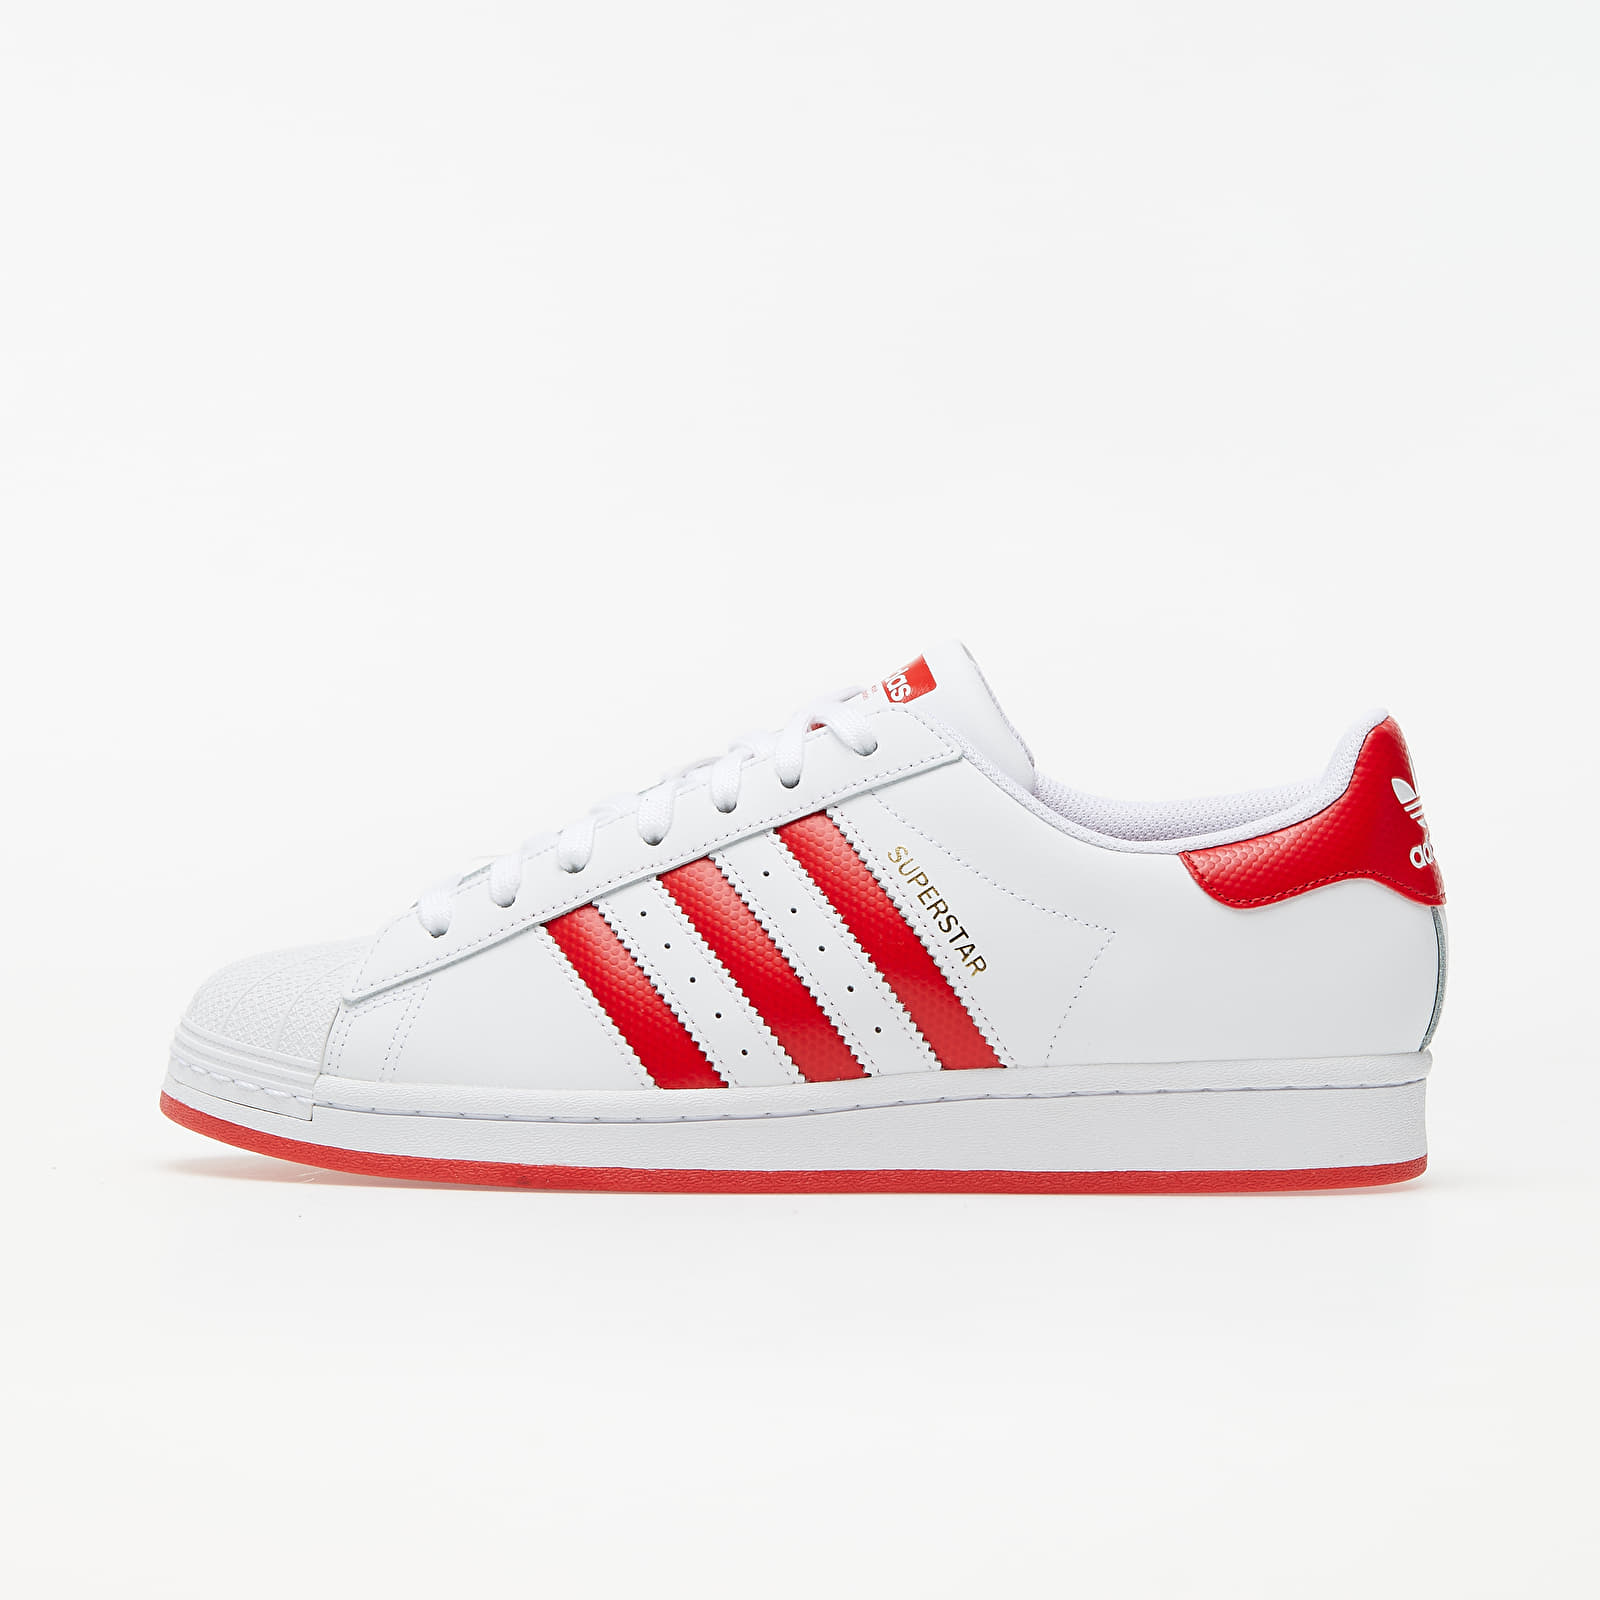 adidas Superstar Ftw White/ Lust Red/ Gold Metalic EUR 42